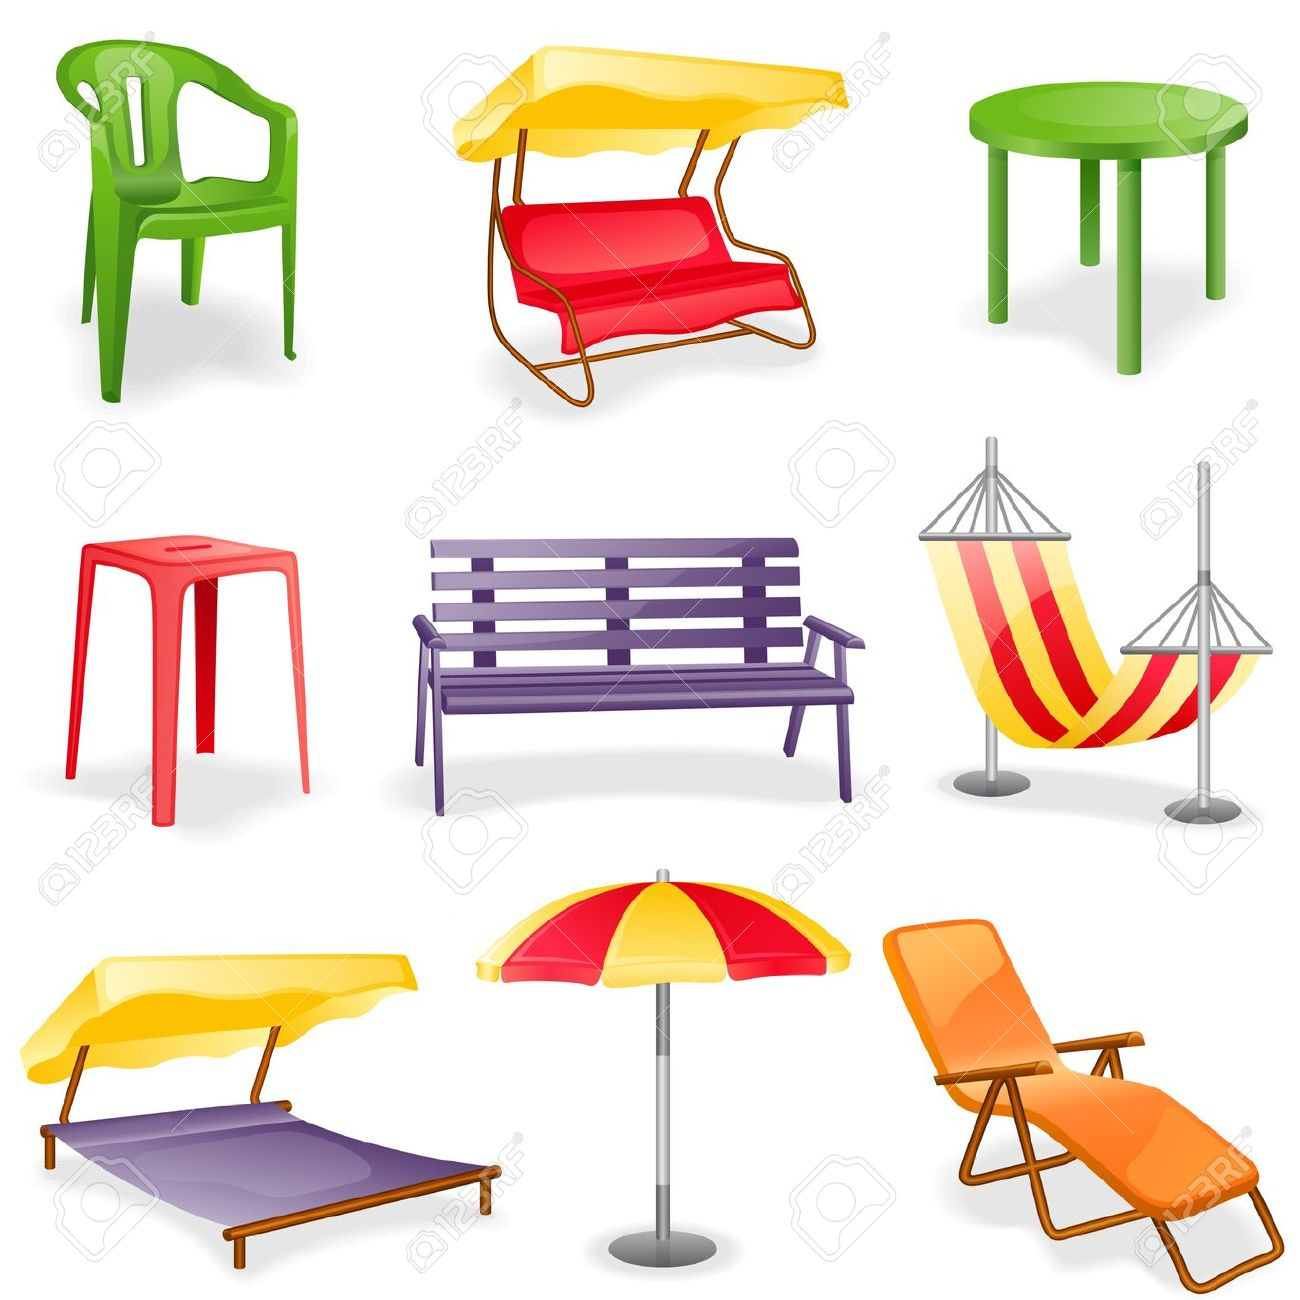 Garden Furniture Icon Set Isolated On A White Background Royalty